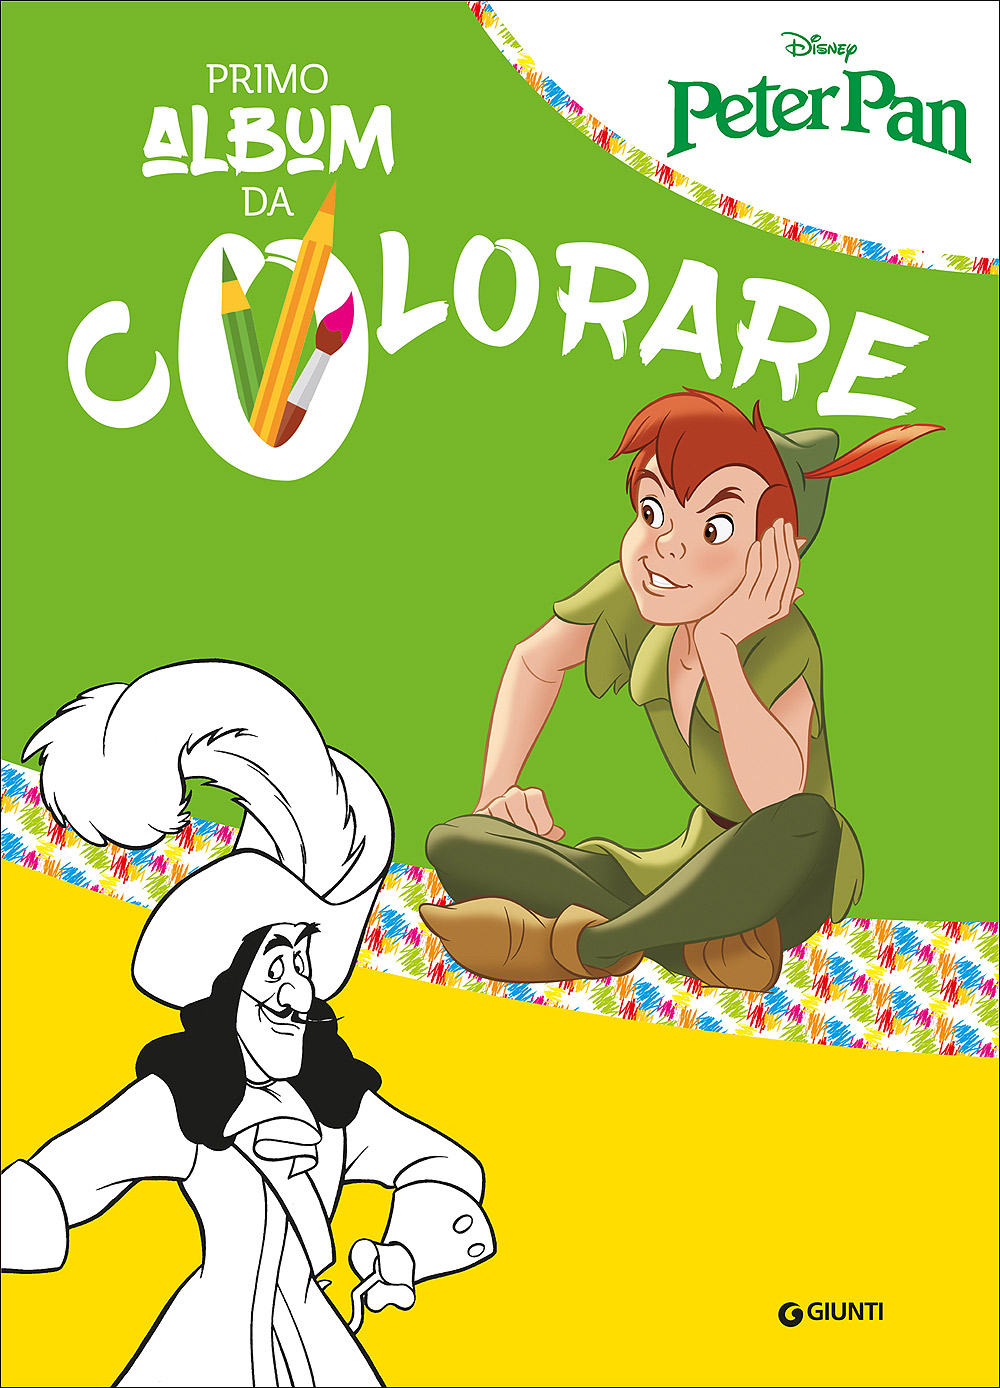 Primo Album da Colorare - Peter Pan